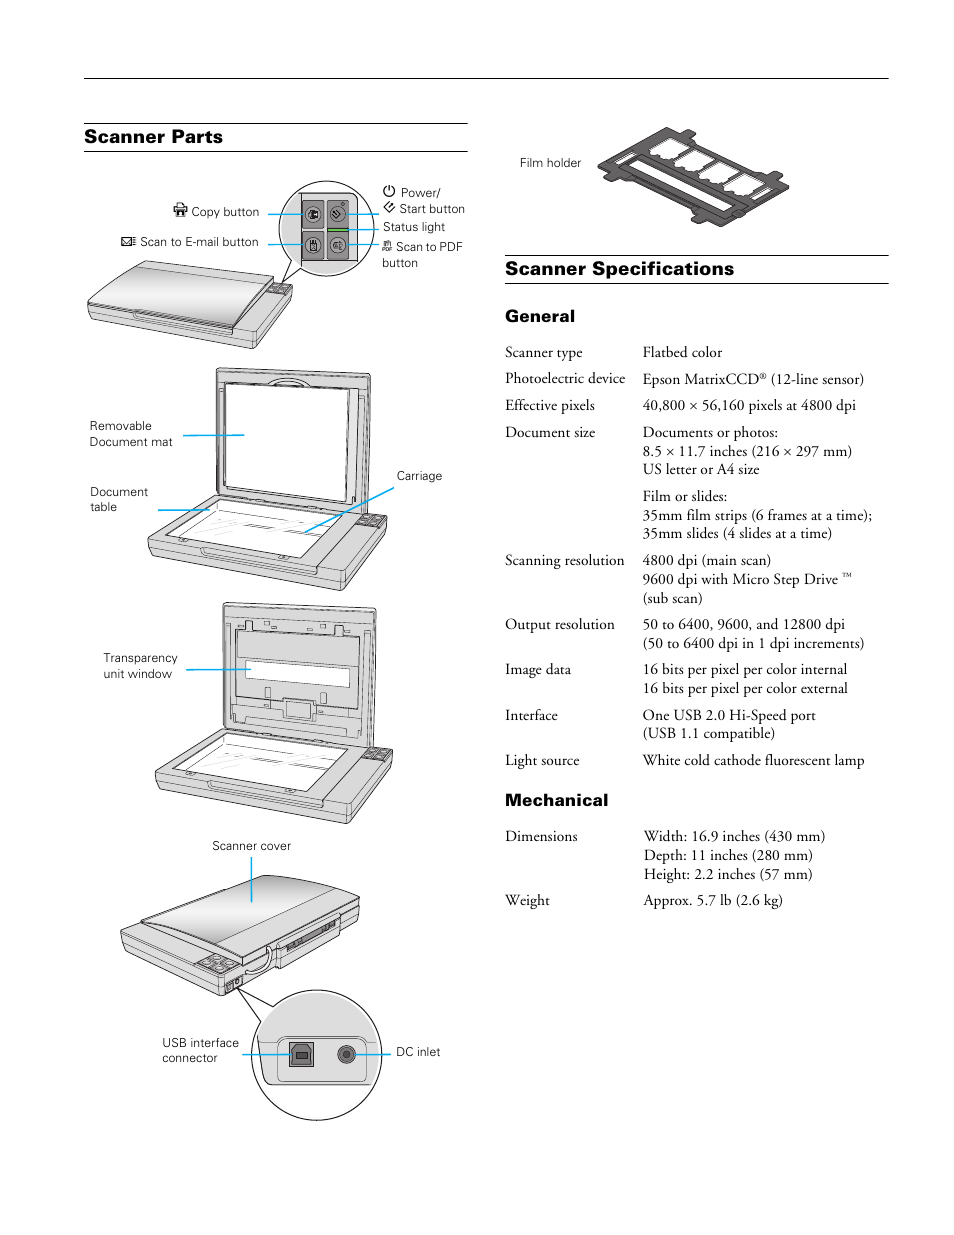 epson perfection v200 photo user manual 9 pages rh manualsdir com epson perfection v200 photo flatbed scanner manual epson perfection v200 photo scanner manual